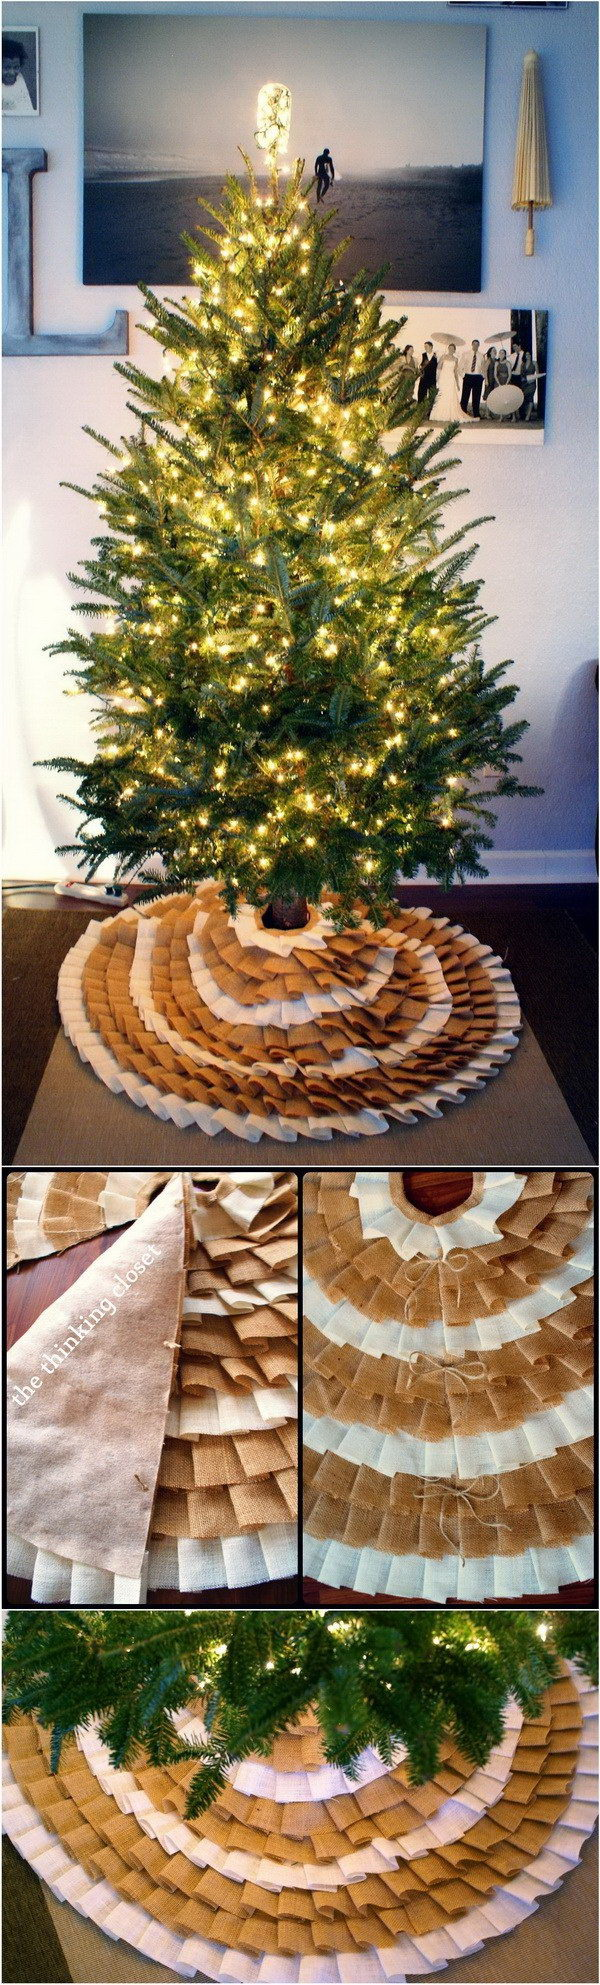 DIY No-Sew Ruffle Christmas Tree Skirt.